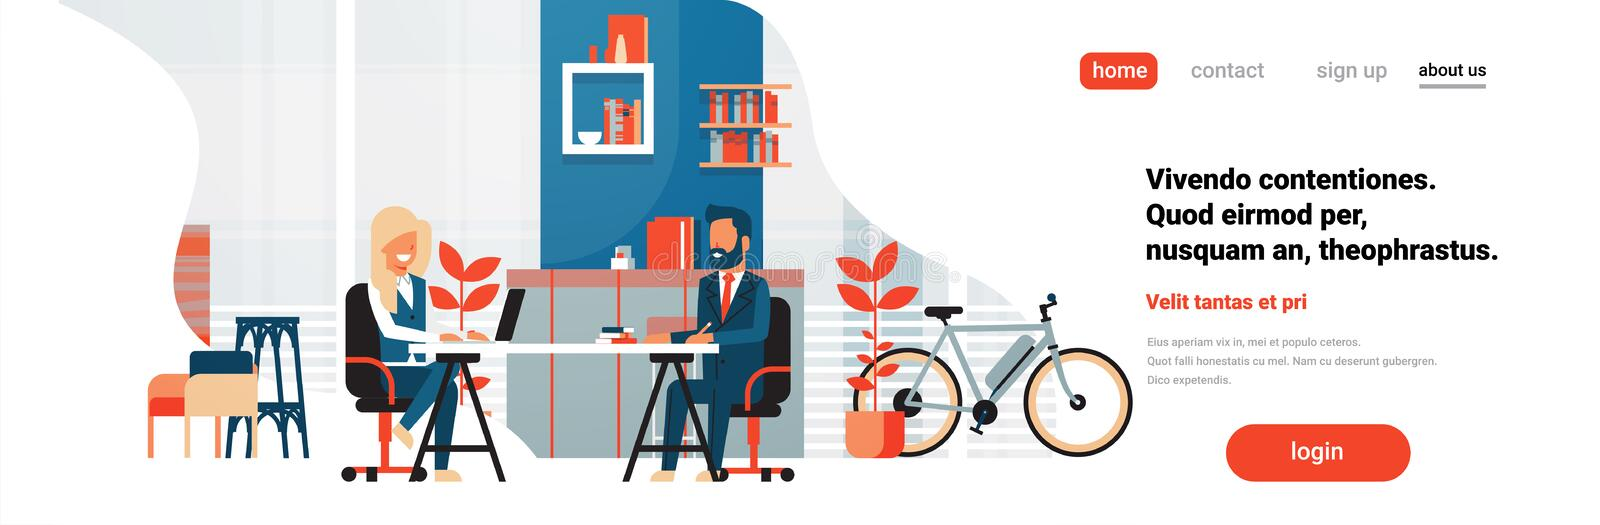 Business man woman sitting office desk modern coworking space working together interior background male female cartoon royalty free illustration